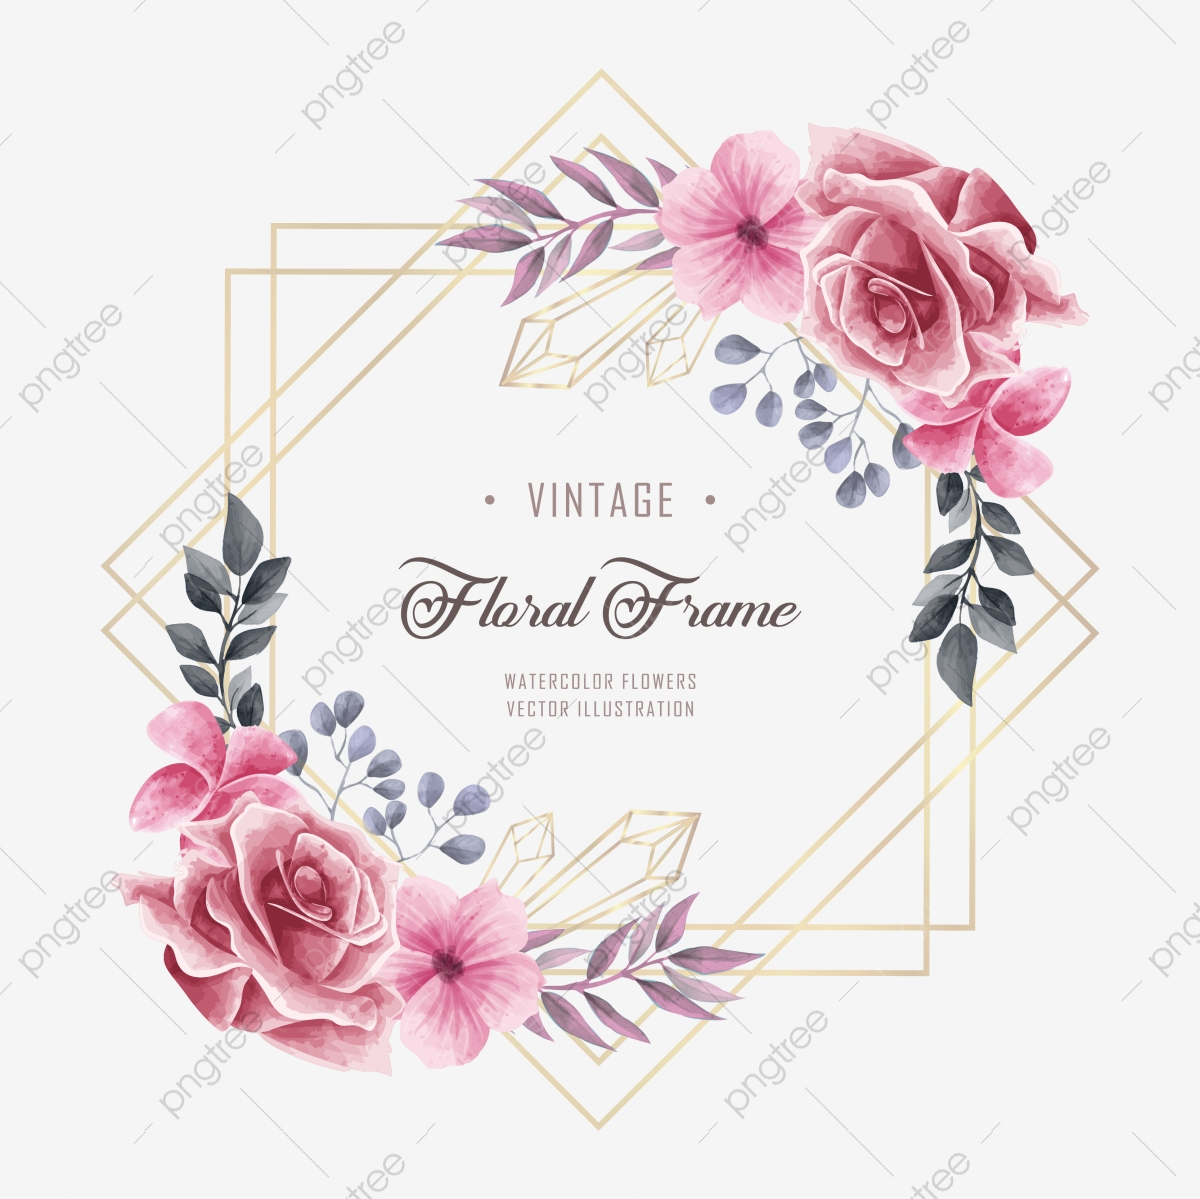 Beautiful Watercolor Floral Flower Wedding Frame Background